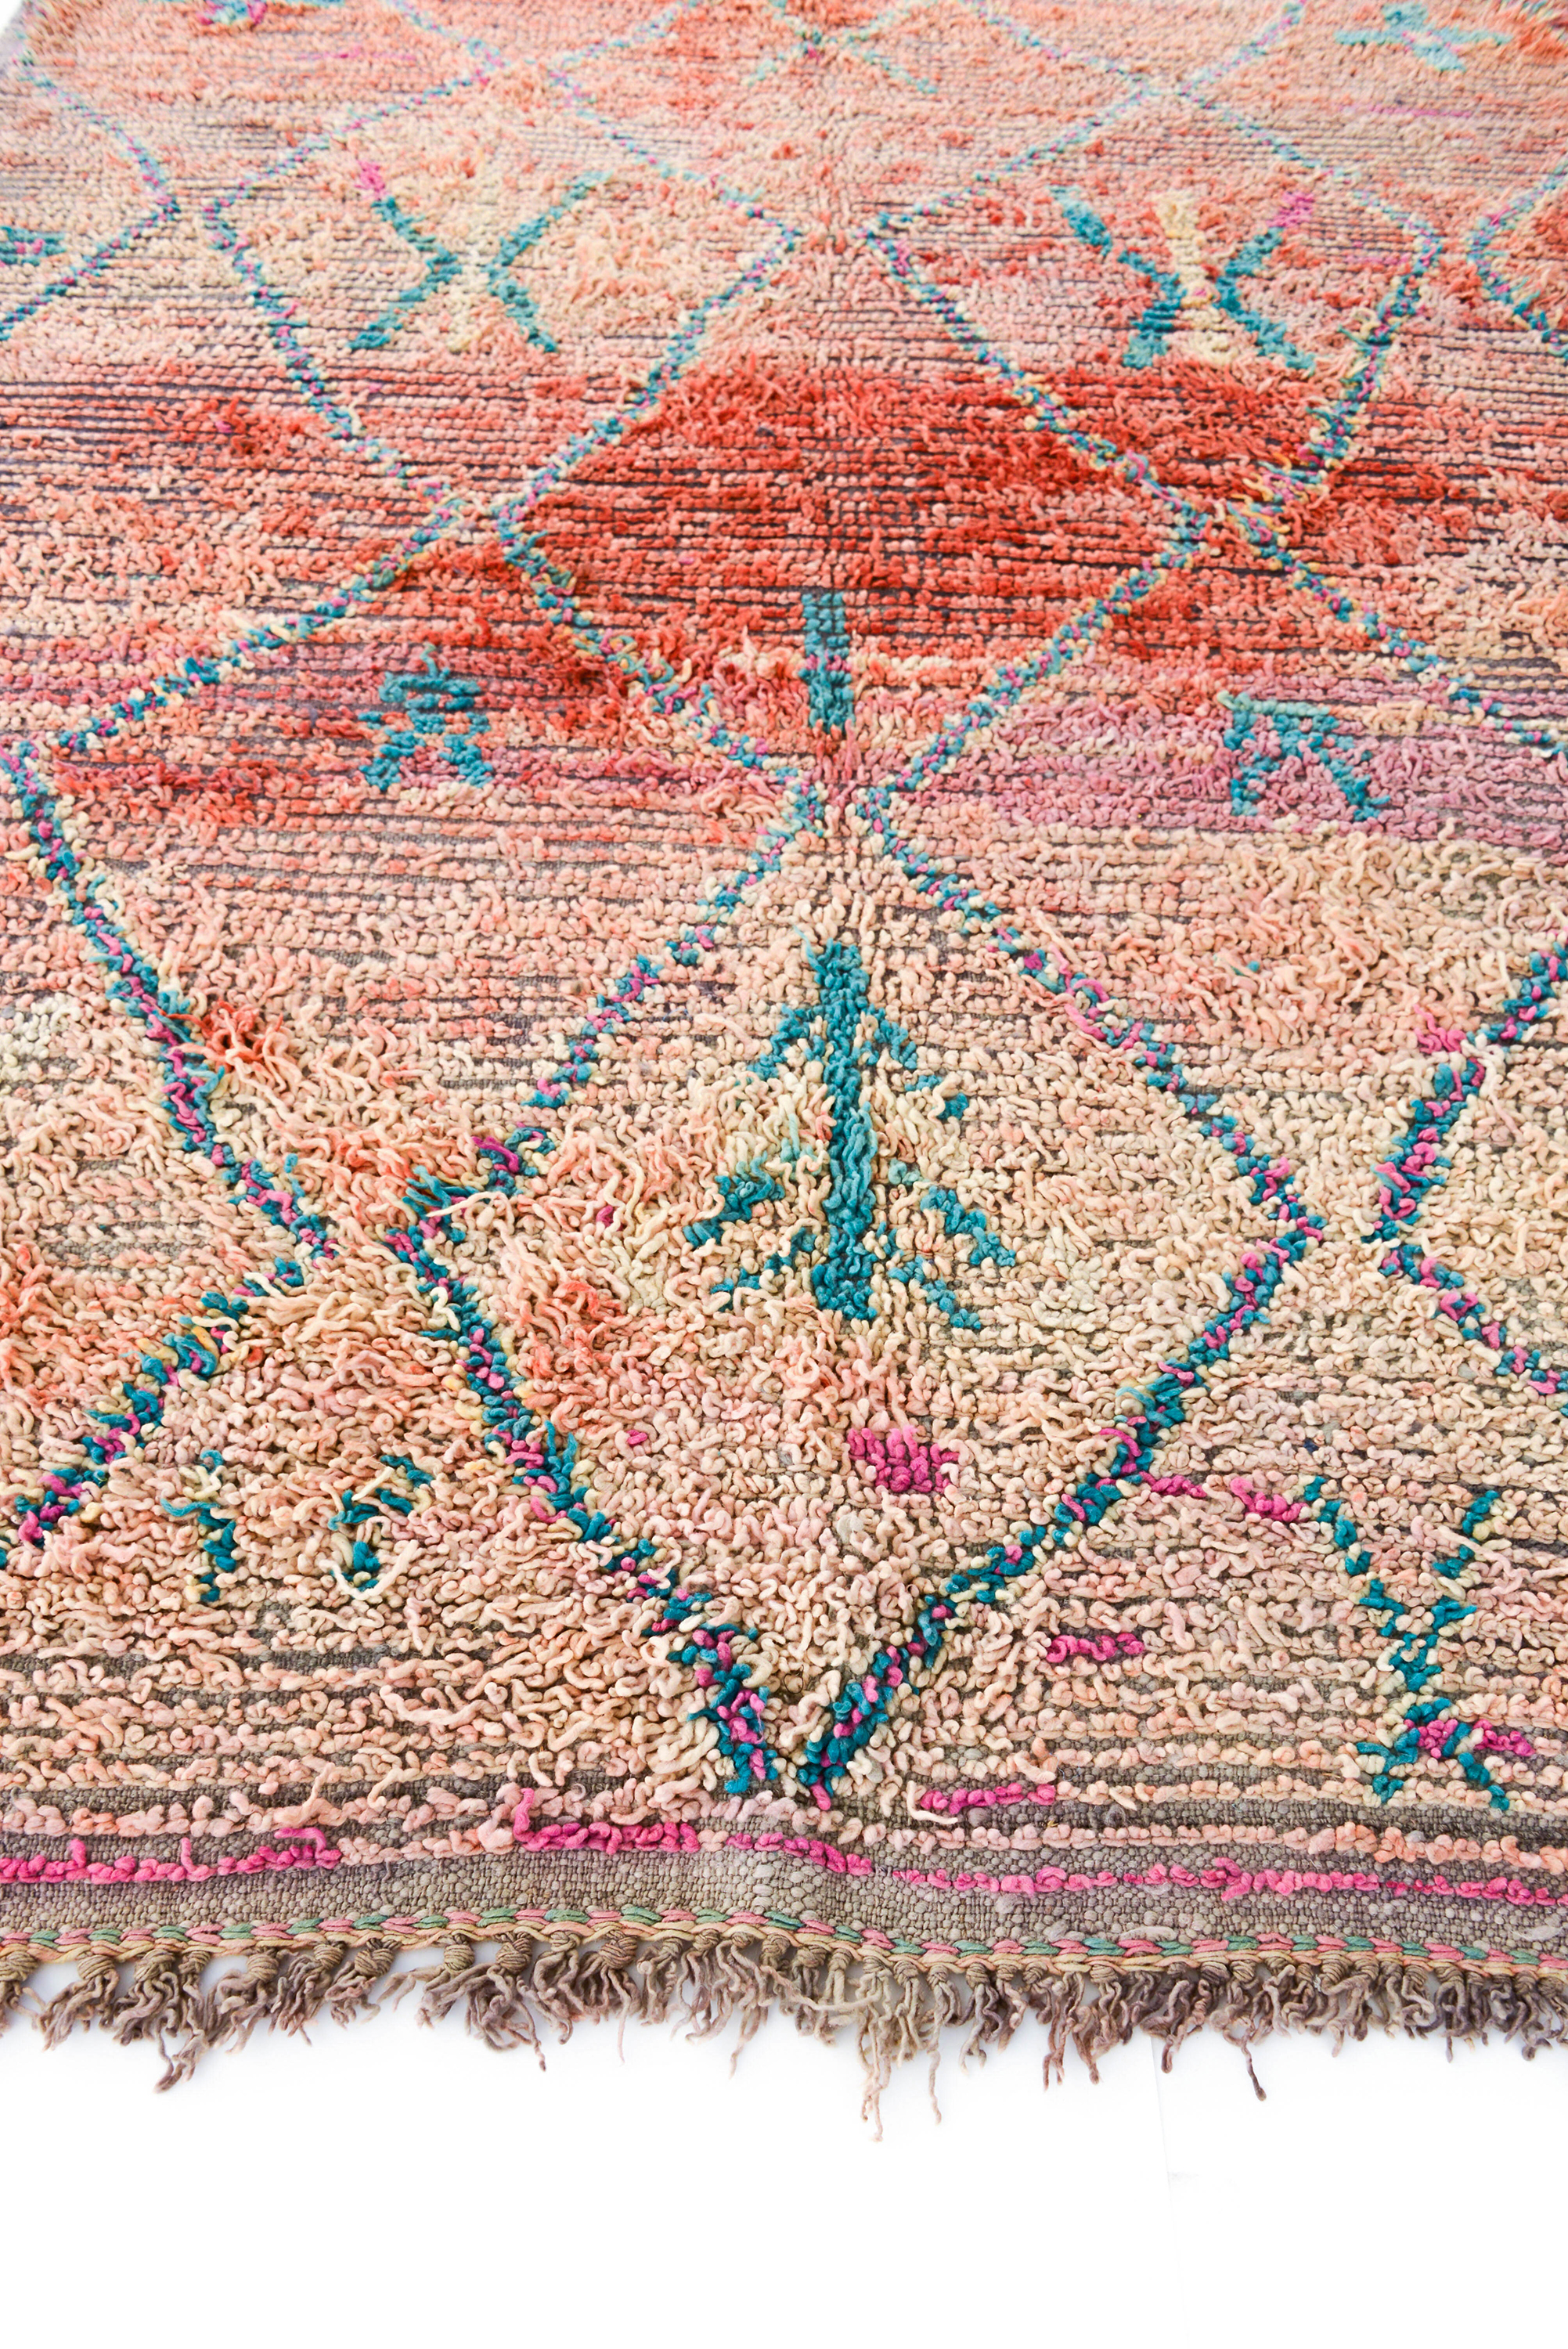 Alice Wouters Vintage Moroccan Beni M Guild Rug